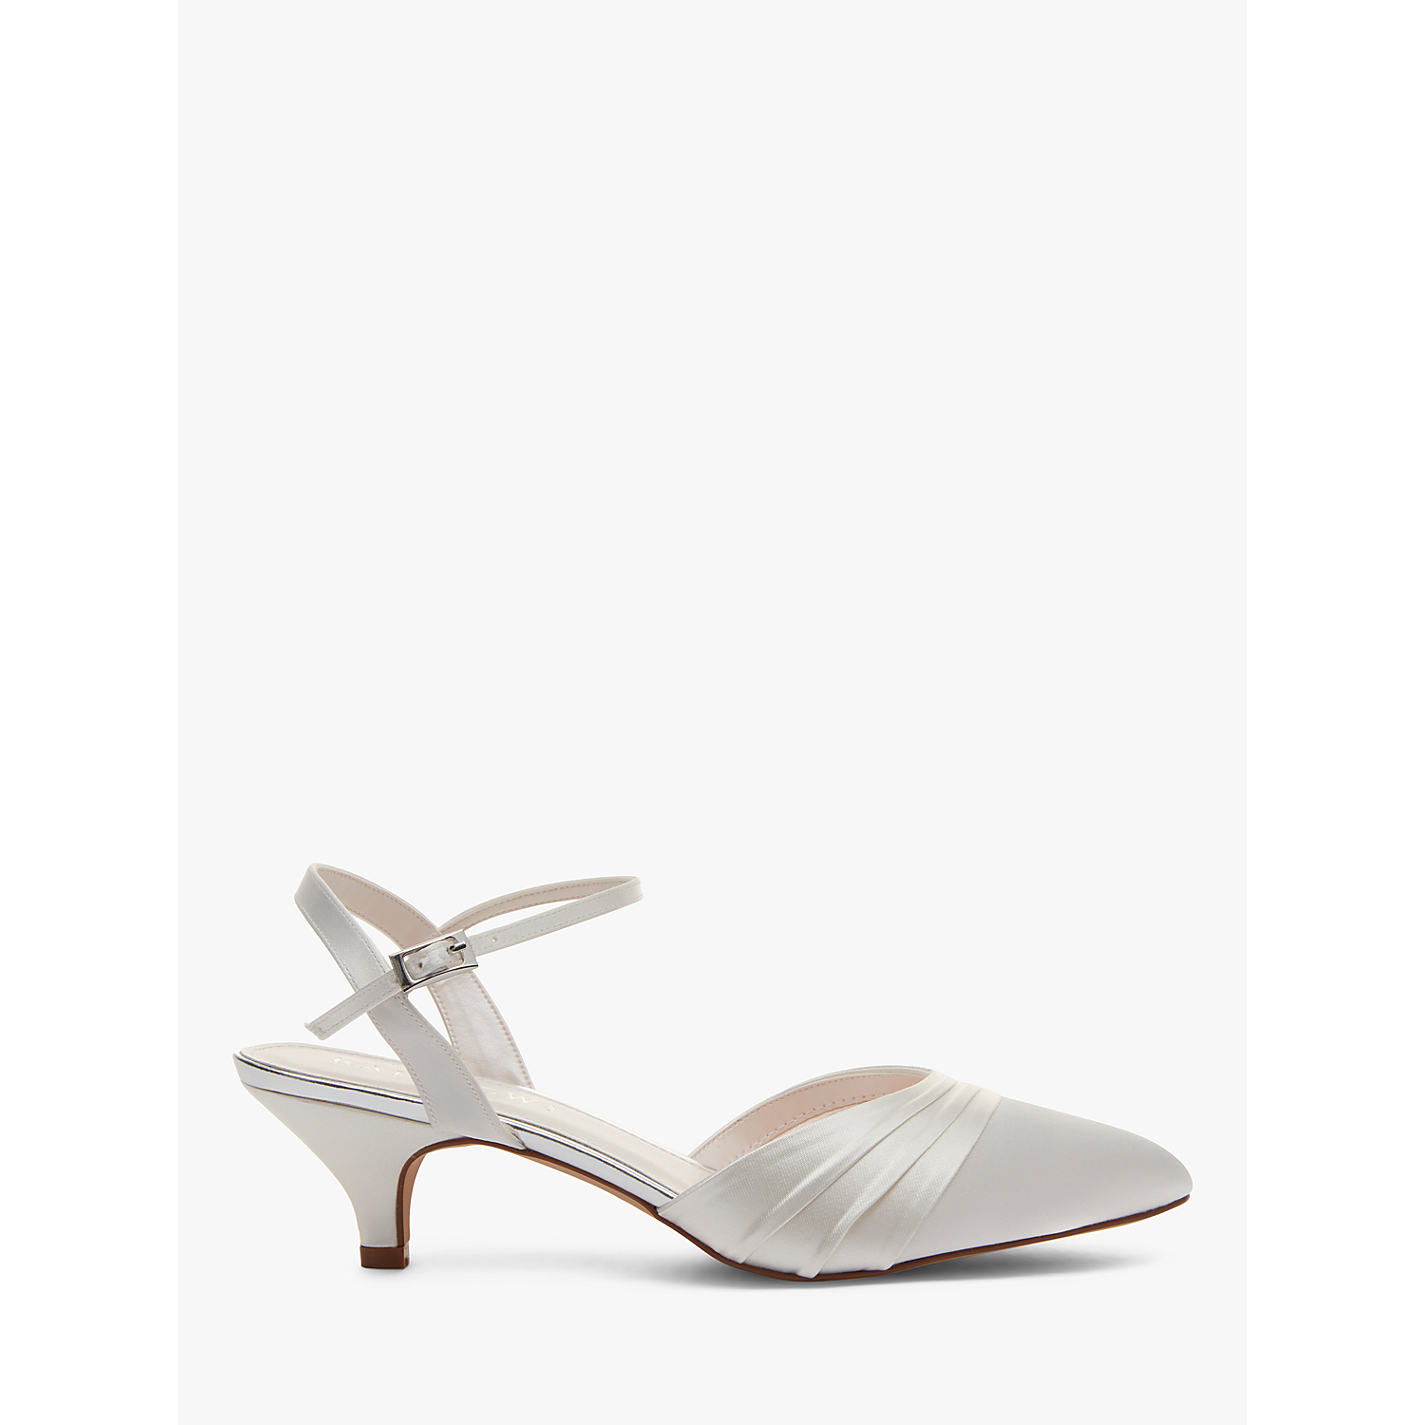 Rainbow Club Julie Kitten Heel Court Shoes Ivory Satin Online At Johnlewis